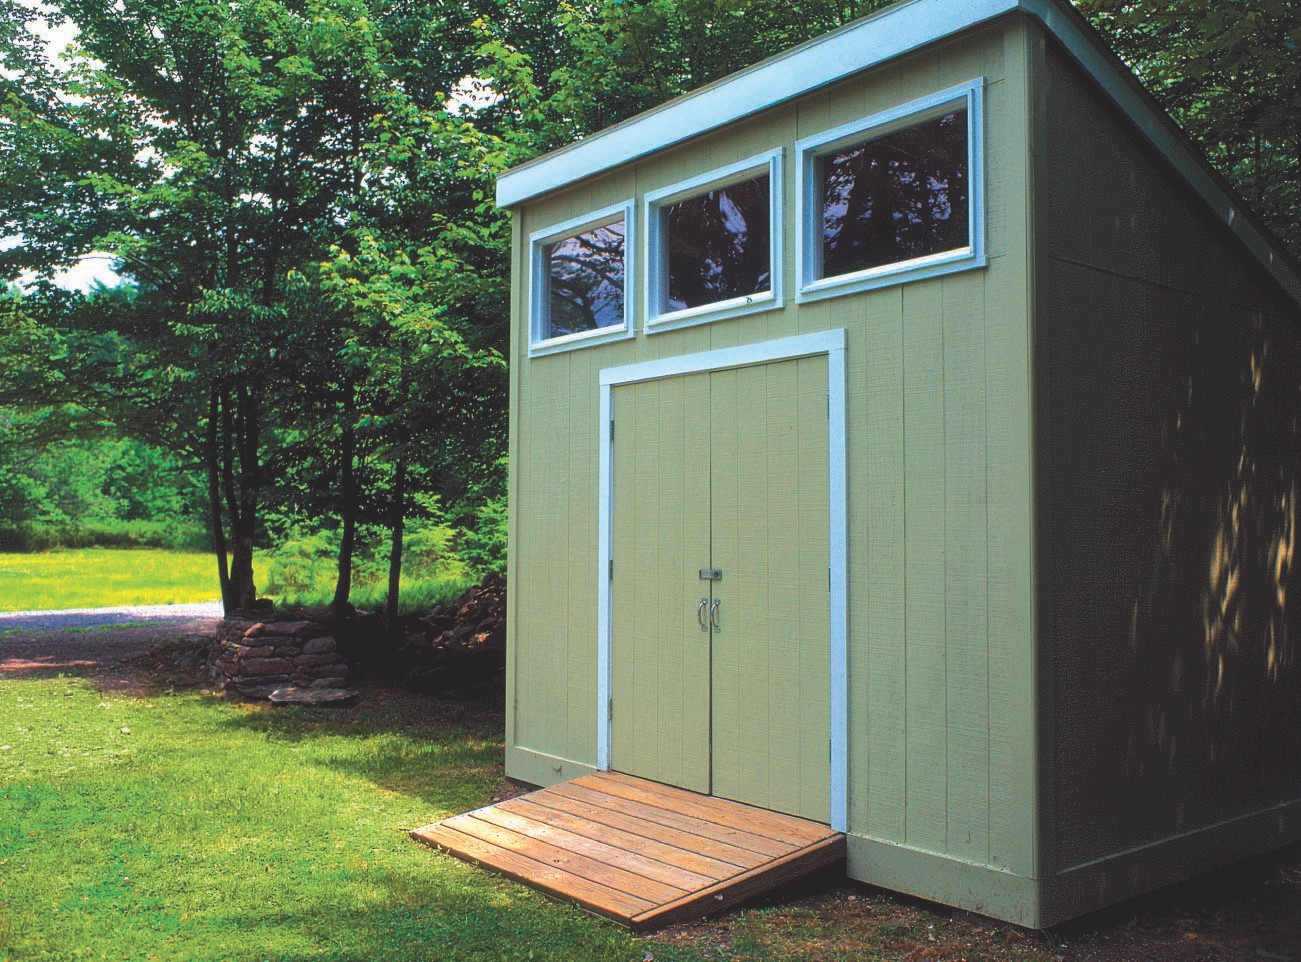 35 Garden Shed Plans For Storing Gardening Tools & Outdoor Stuff ...